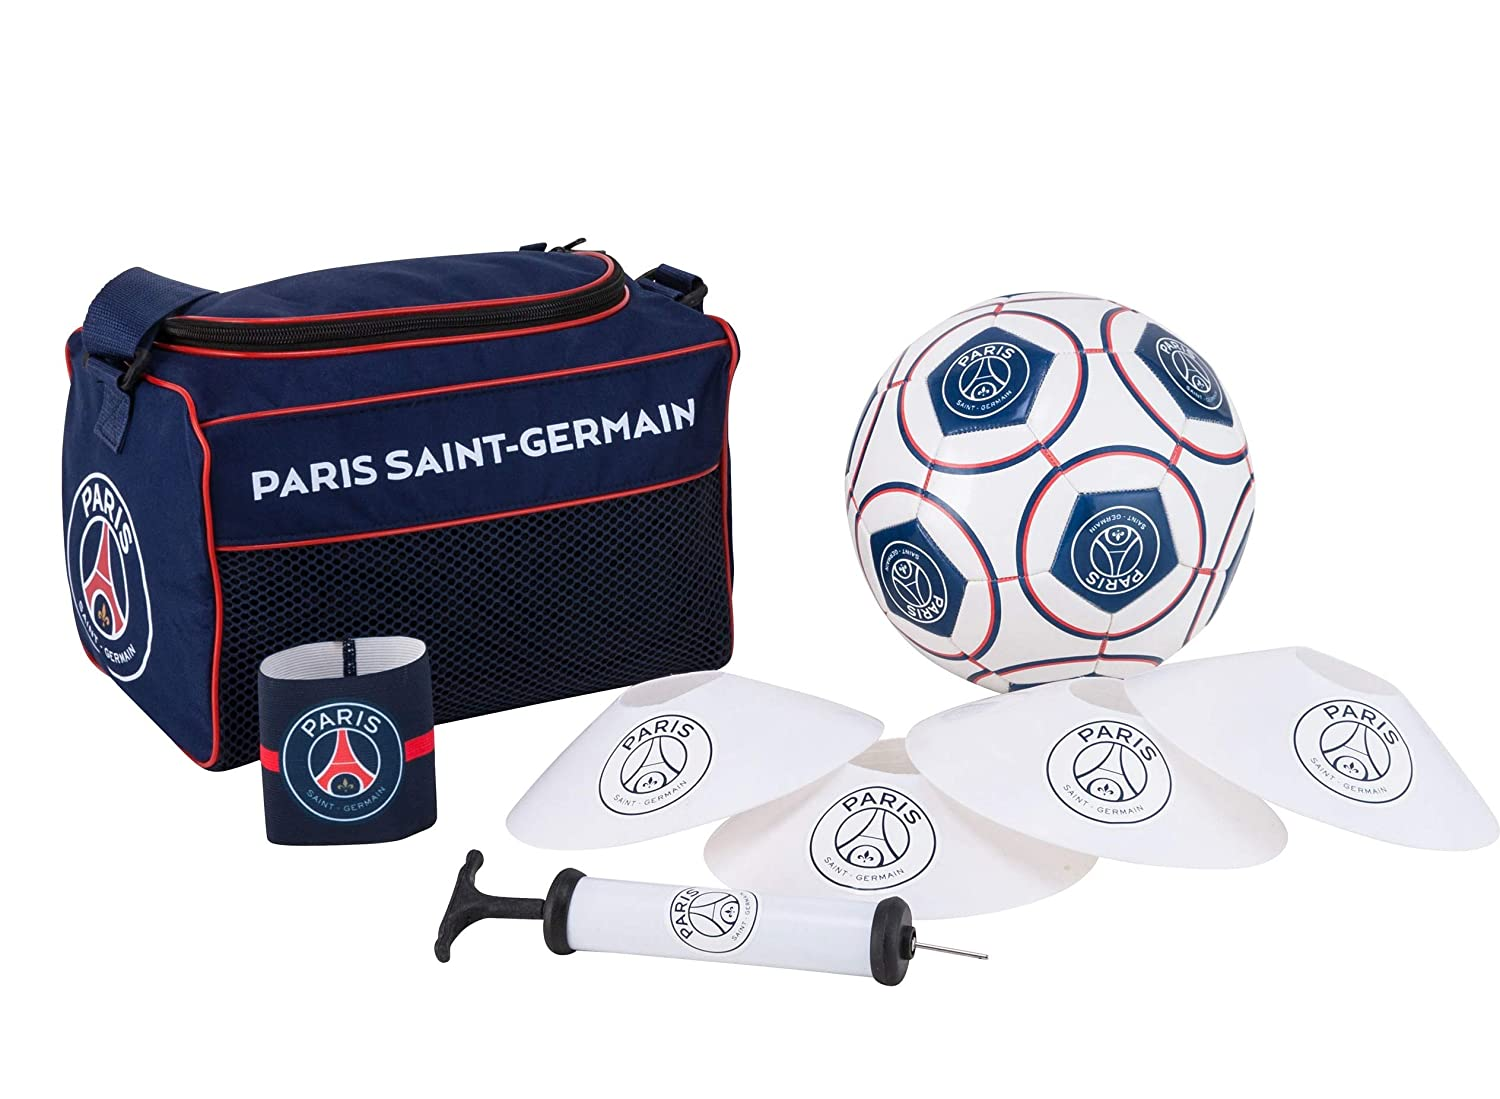 Rucksack + Ball + Manschette + Pumpe + Kegel PARIS SAINT GERMAIN